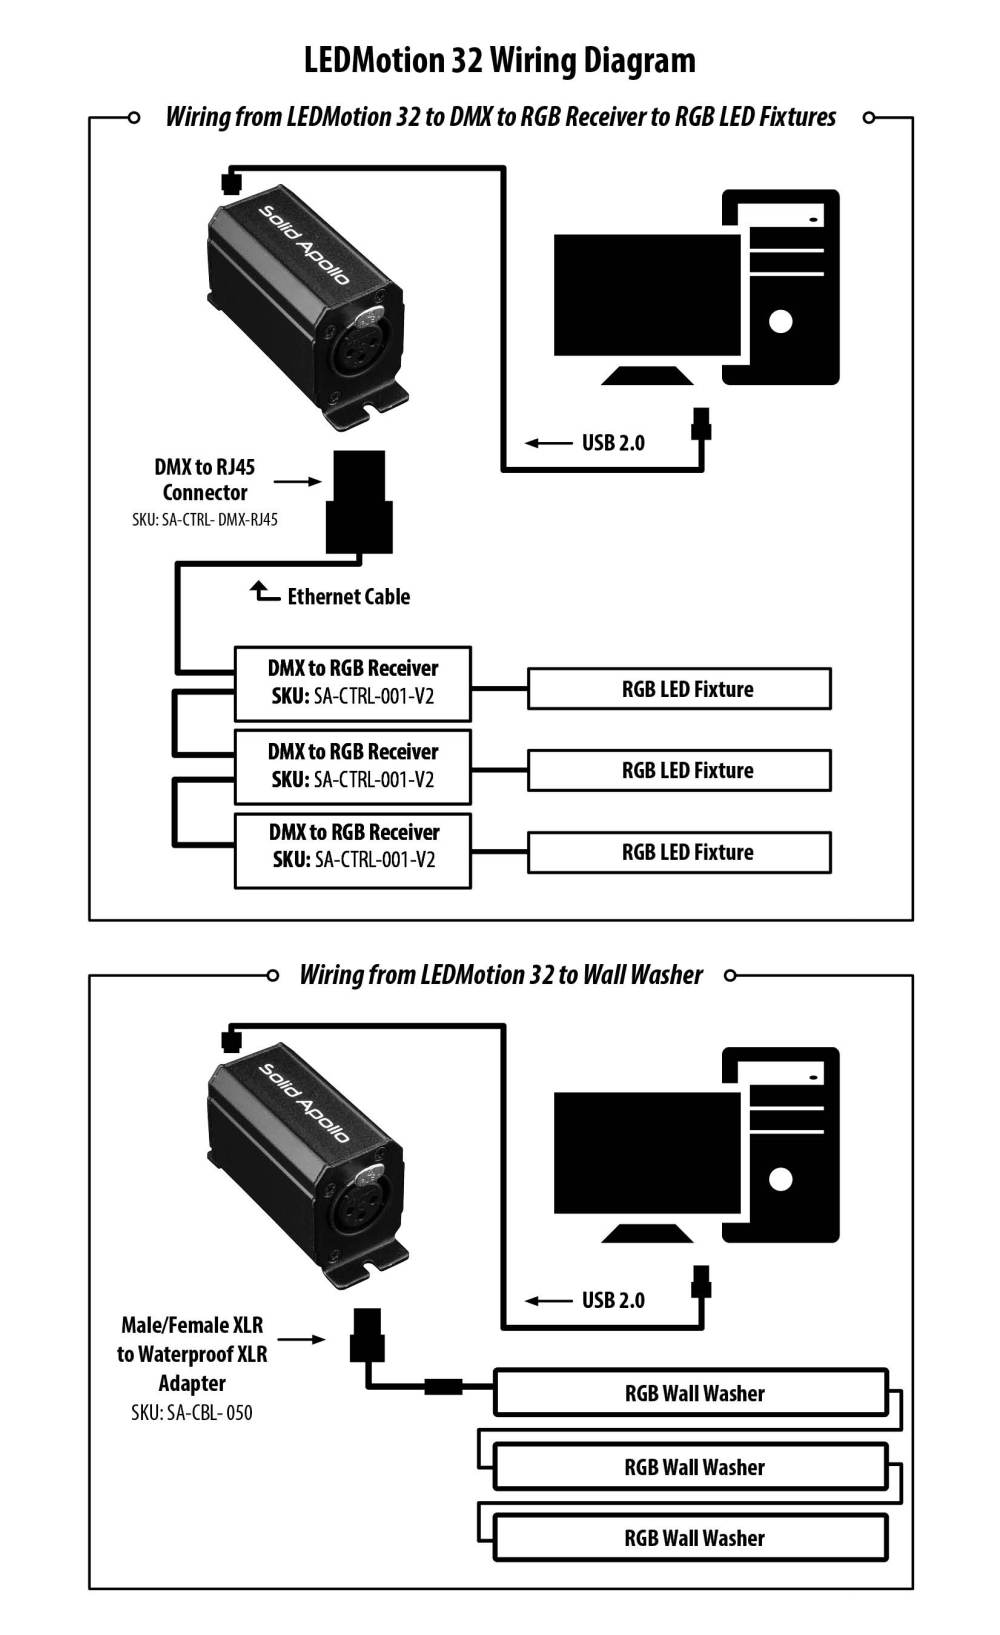 medium resolution of ledmotion 32 rj45 b wiring diagram dmx rj45 wiring diagram